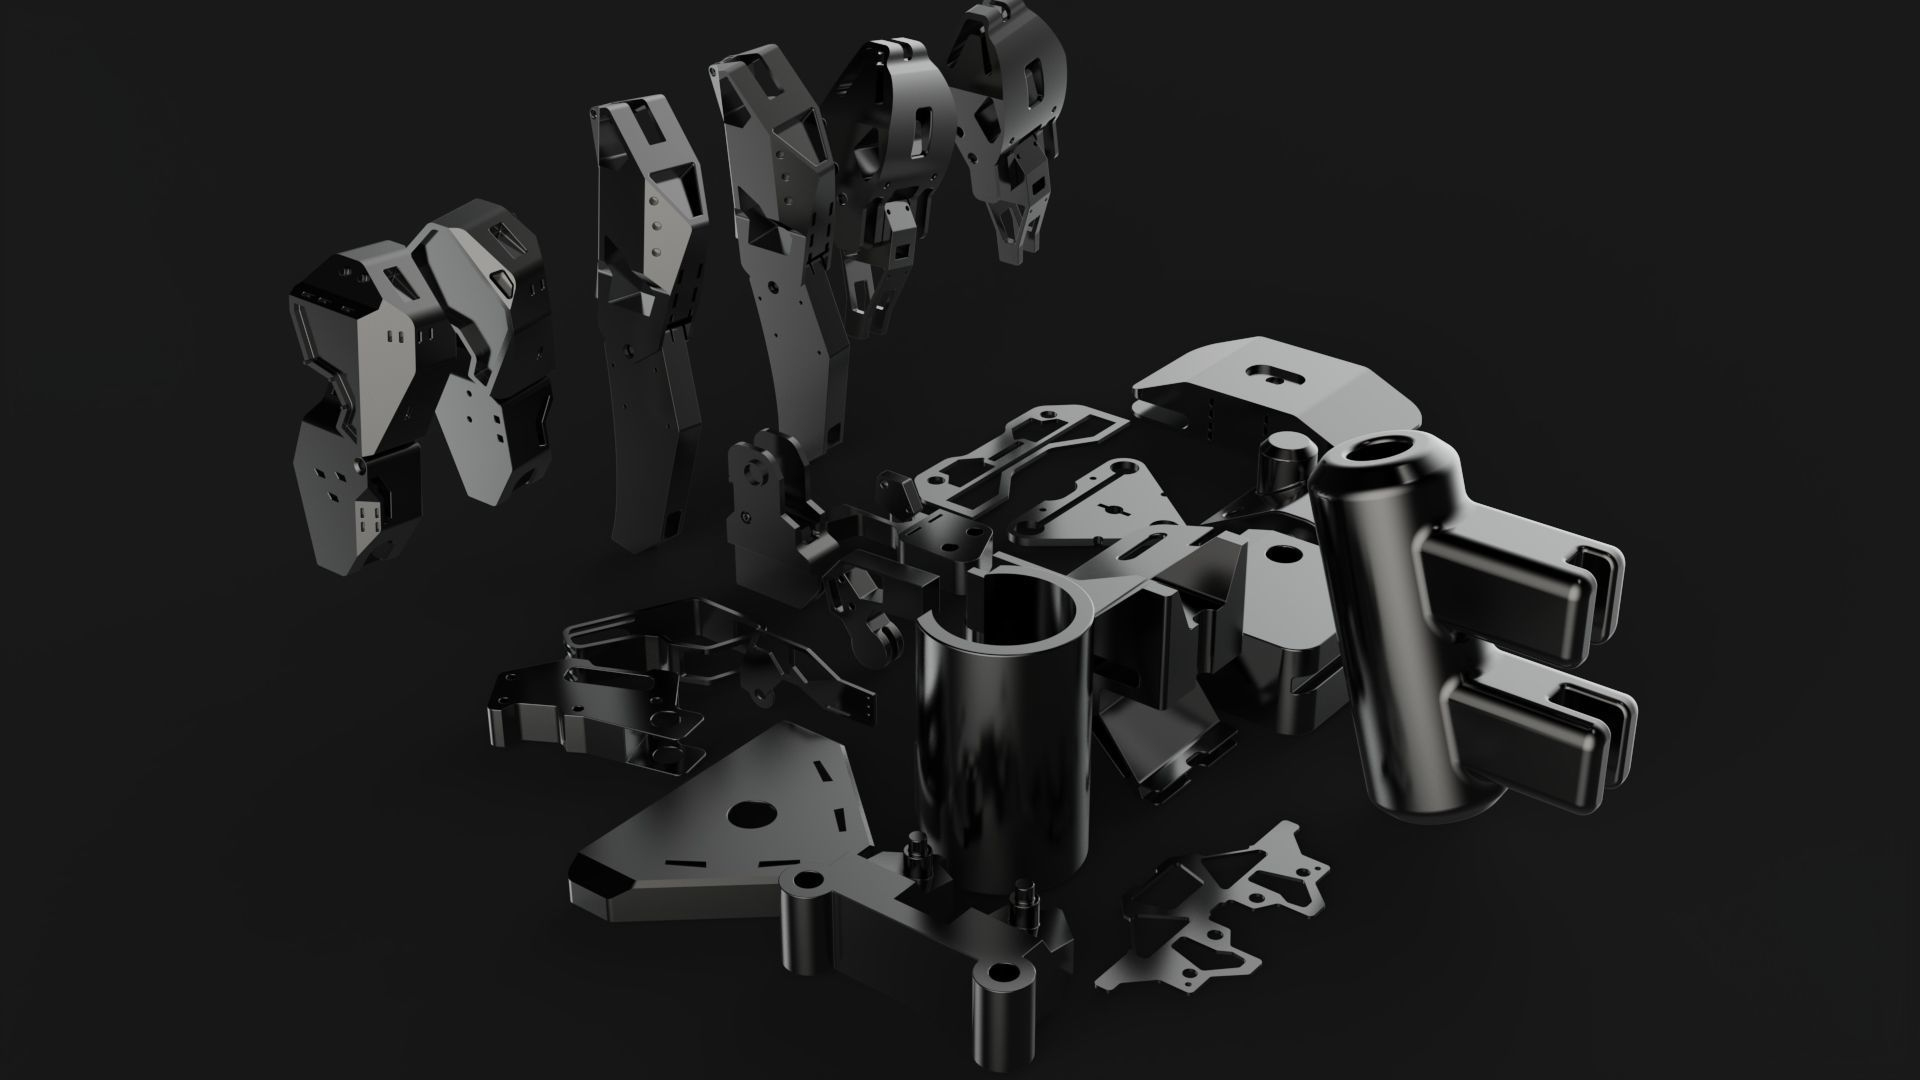 robotic part and legs